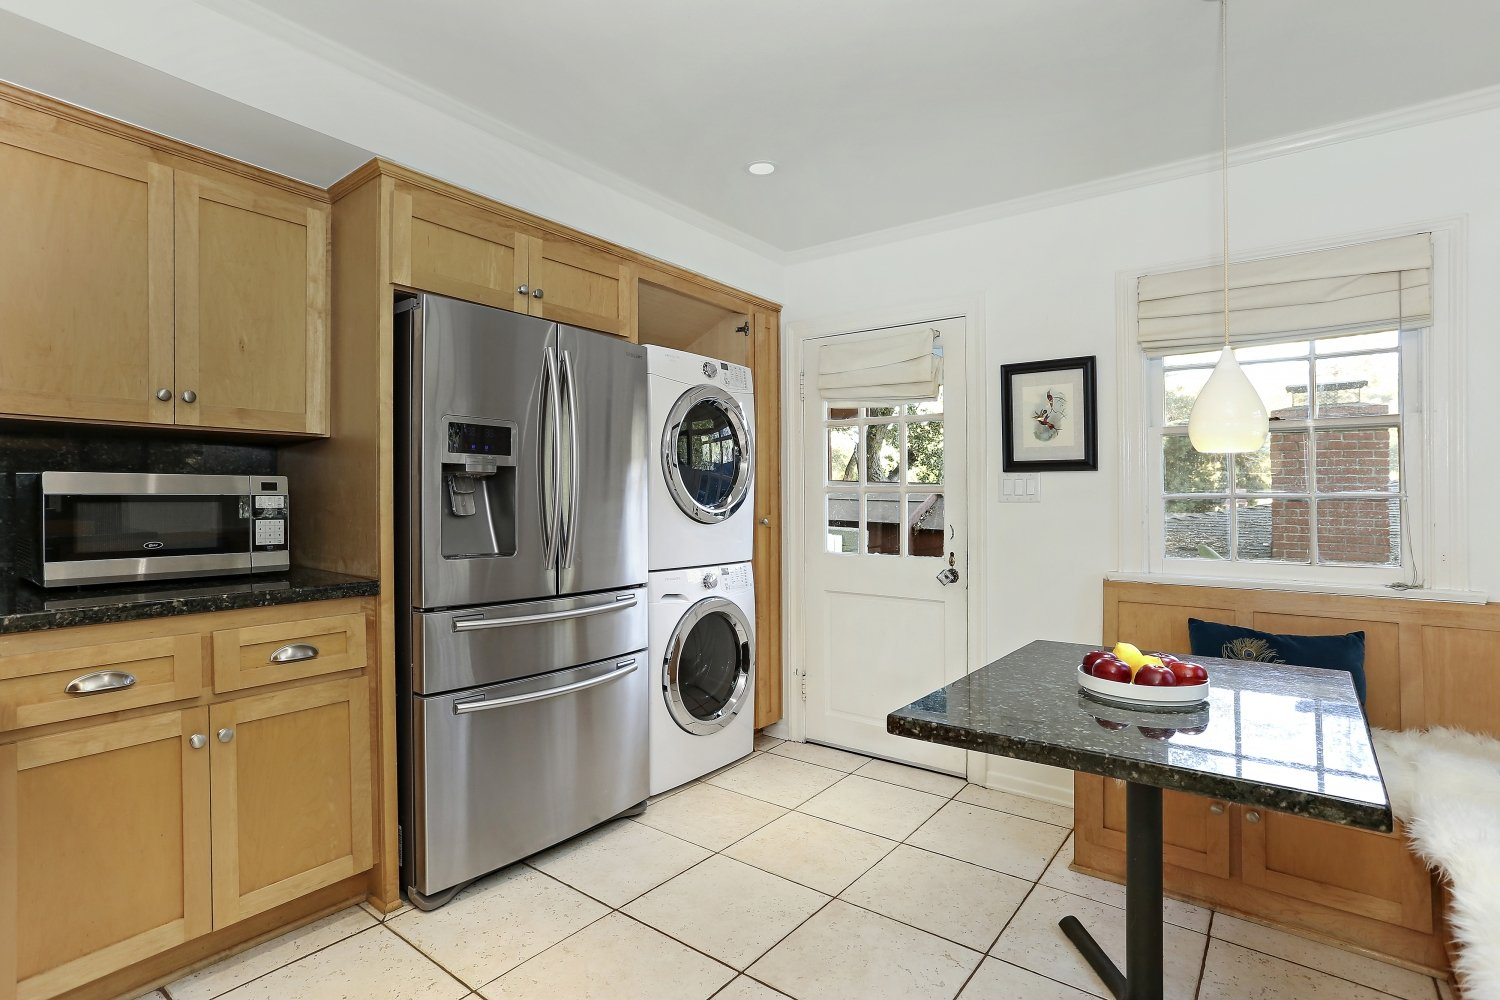 Pennsylvania Dutch Cottage Gerard Colford for sale. 2310 E Chevy Chase Dr. Glendale CA - Kitchen with washer and dryer